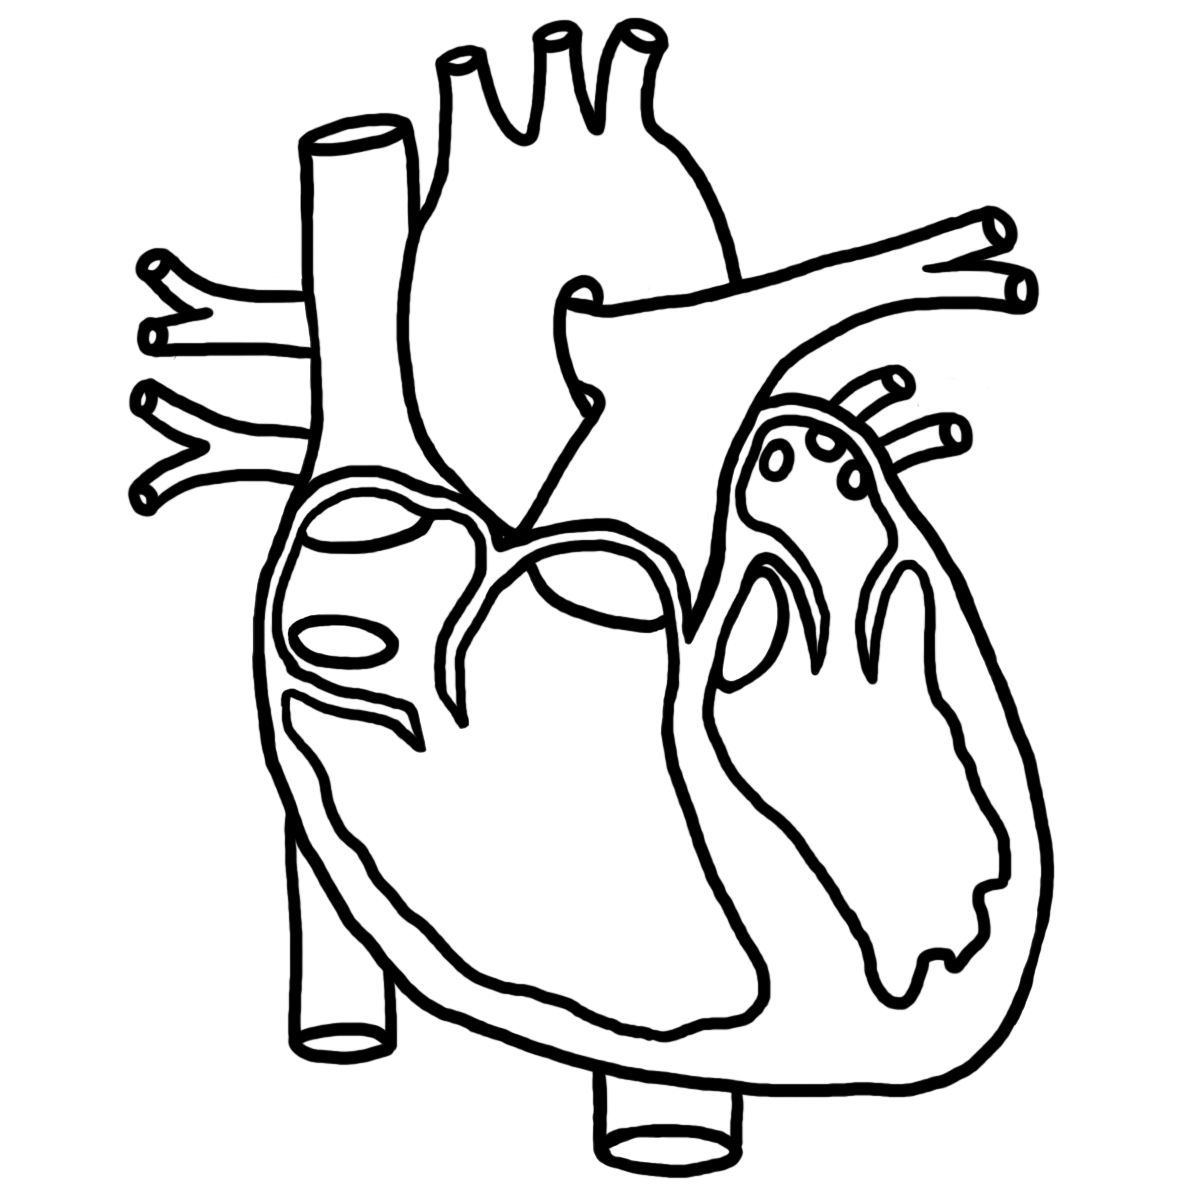 1200x1200 Human Heart Sketch With Label Hand Drawing Sketch Anatomical Heart